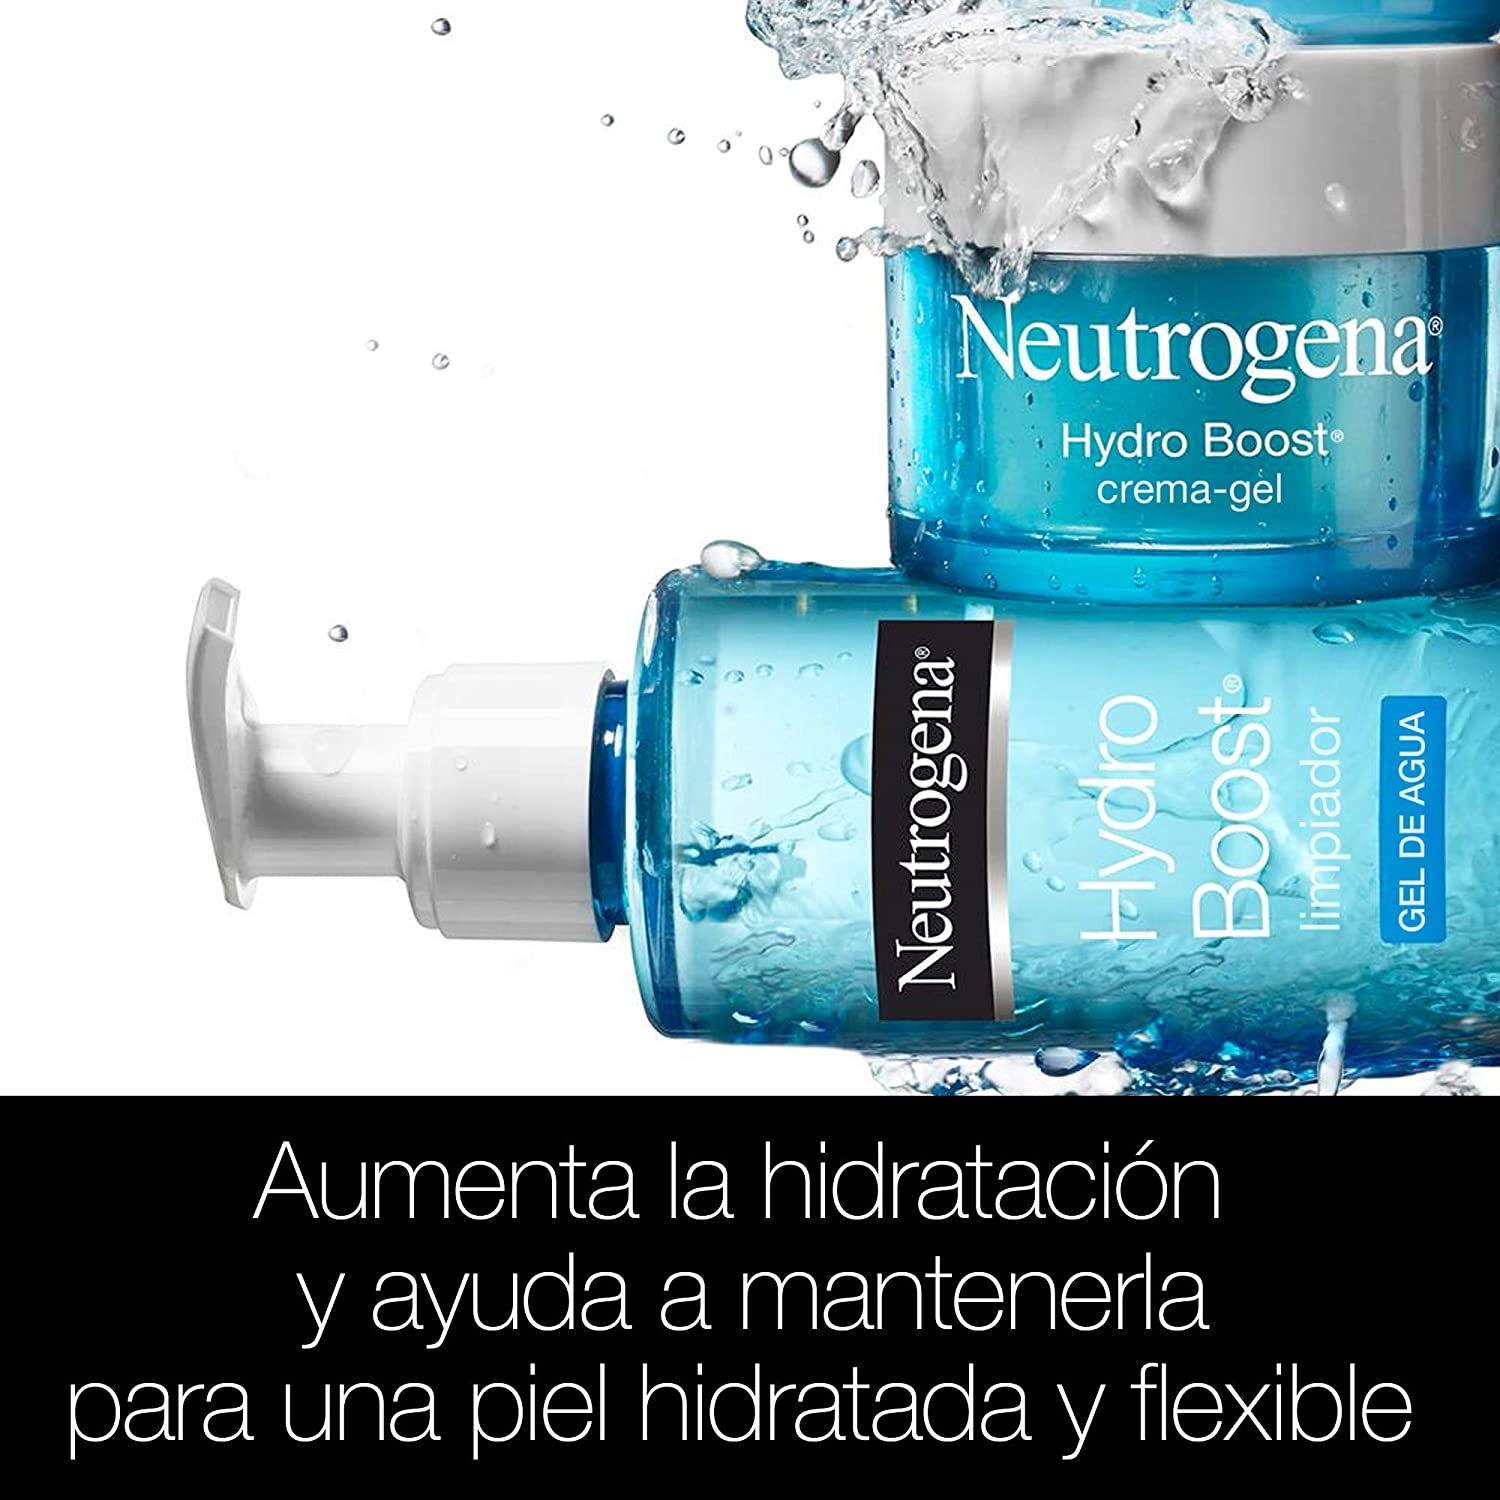 Neutrogena Hydro Boost Limpiador Gel De Agua 200ml Amazon Ca Beauty